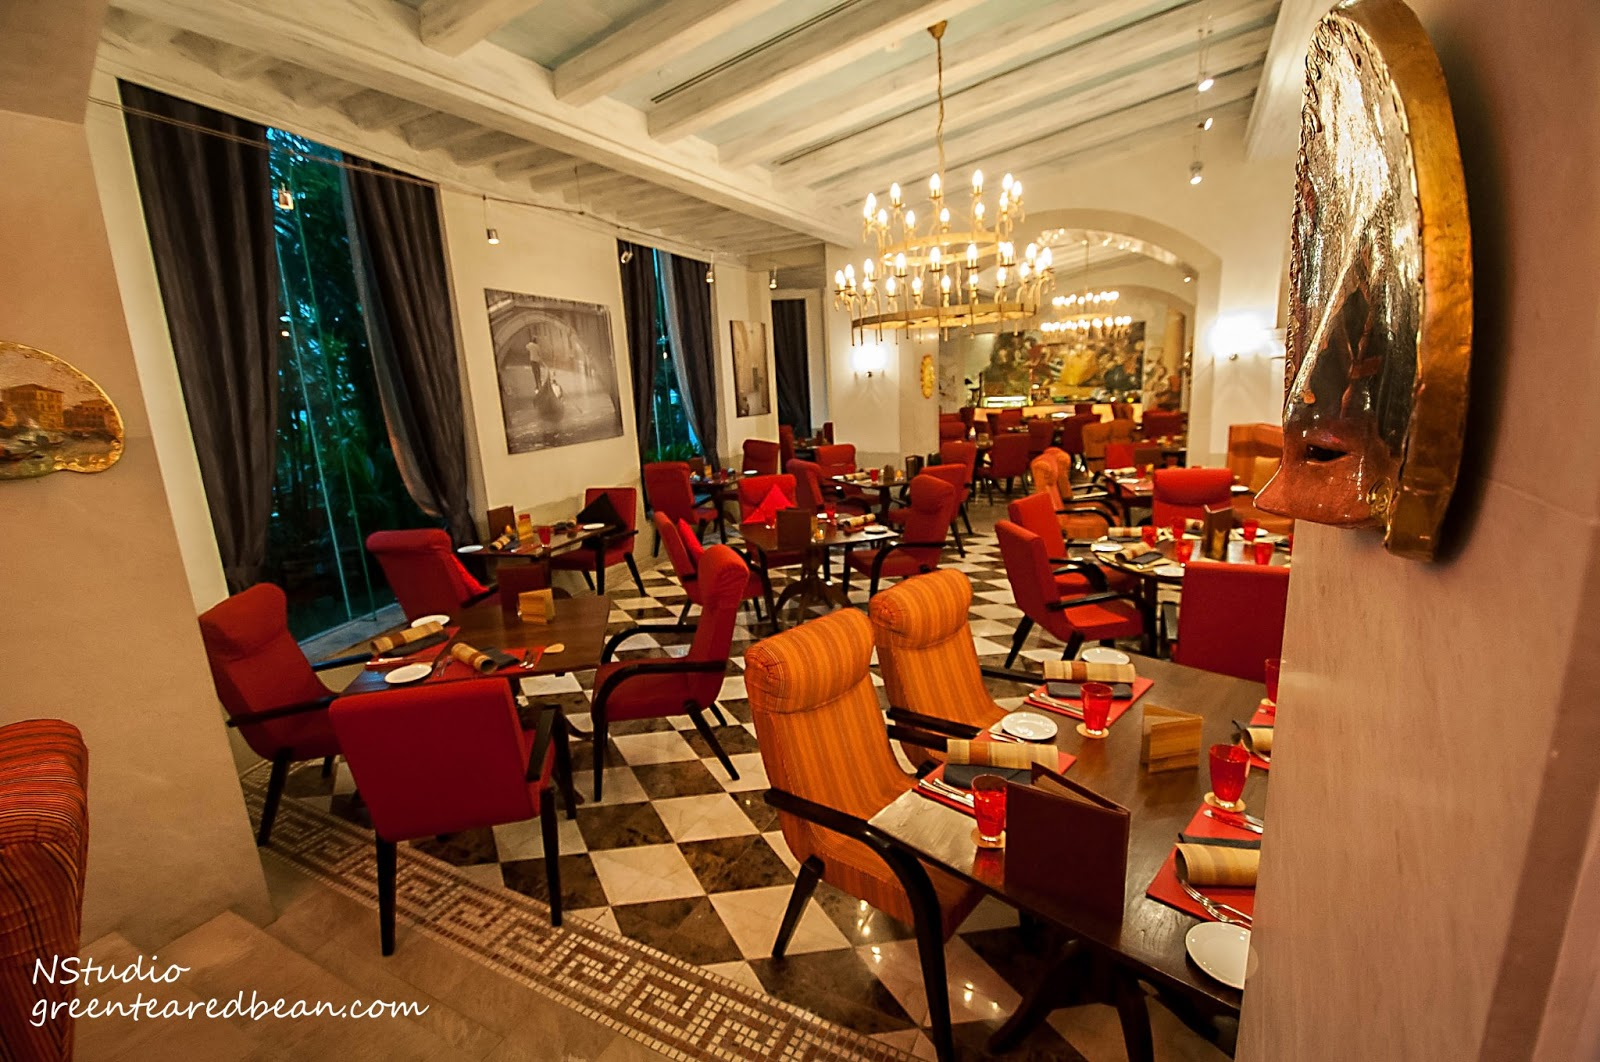 Favola Offers Quirky, Eclectic Menu And A Relaxed, Calm Ambiance . It Is A  Eminent Fine Dining Restaurant In Kuala Lumpur .Behind The Elegant And  Luxurious ...